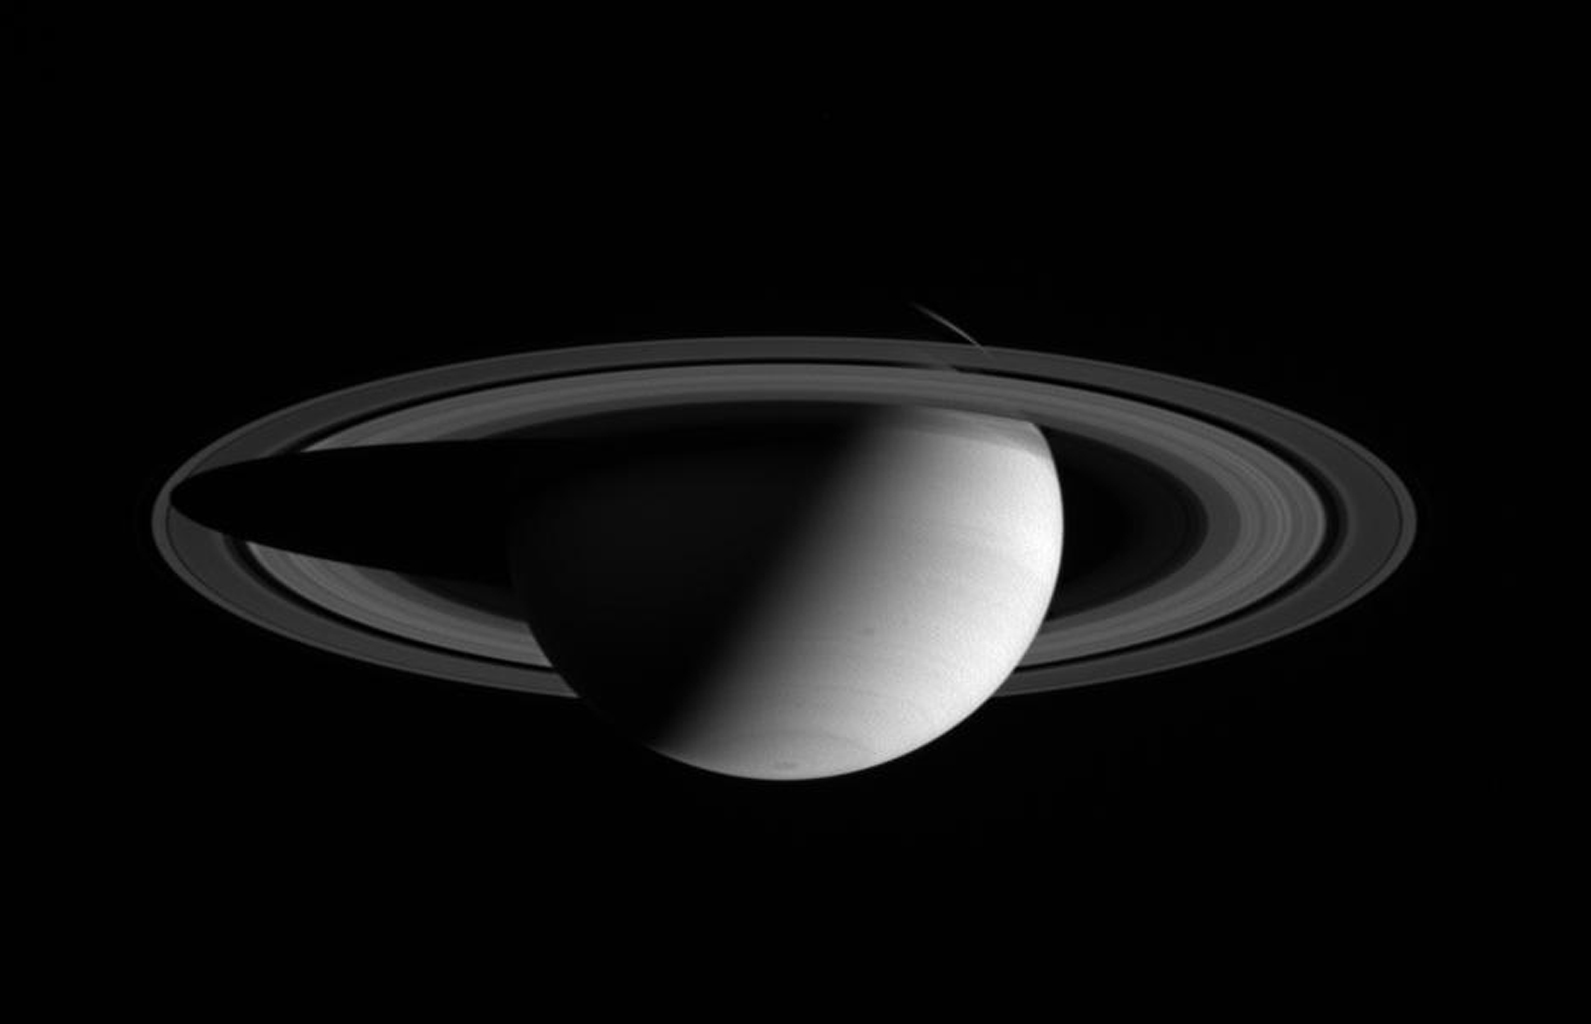 NASA's Cassini spacecraft wide angle camera view shows a half-lit Saturn, with two dark storms rolling through its southern hemisphere.